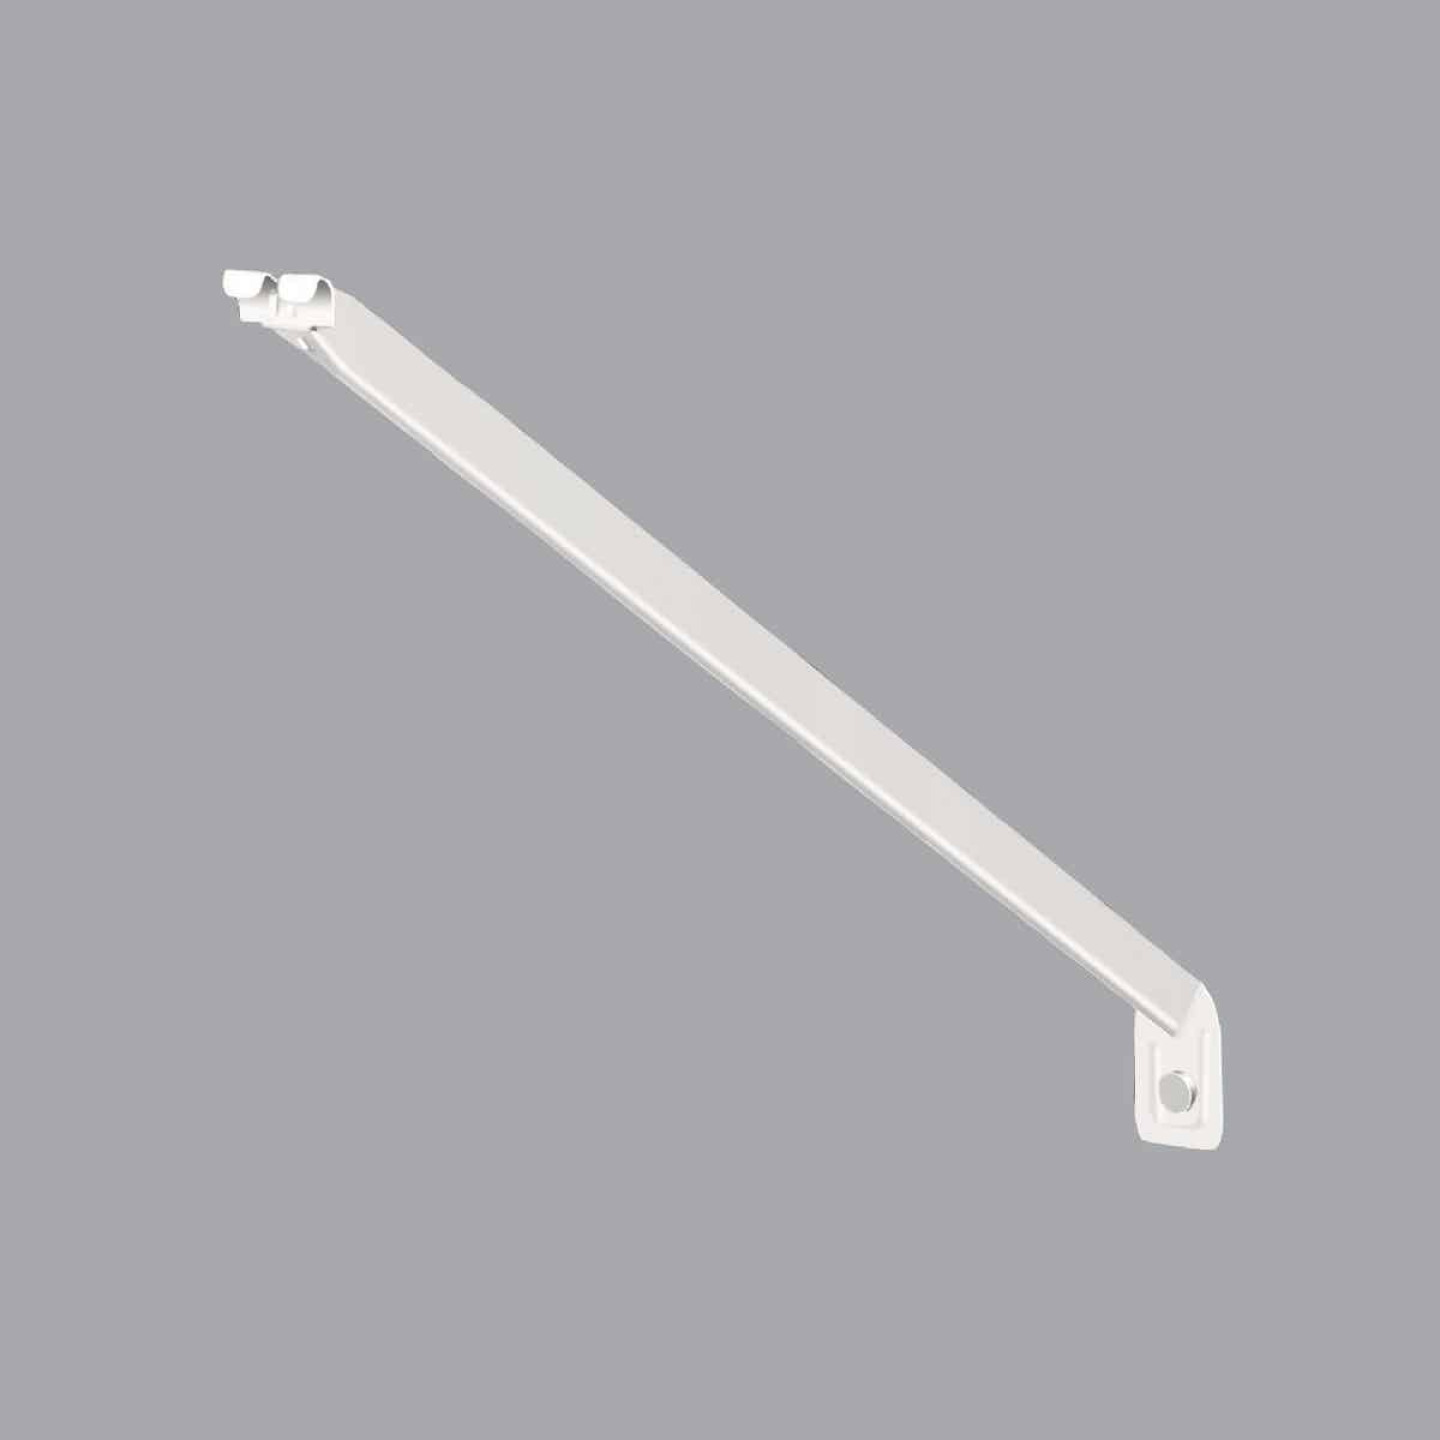 ClosetMaid 20 In. White Shelving Support Bracket Image 1